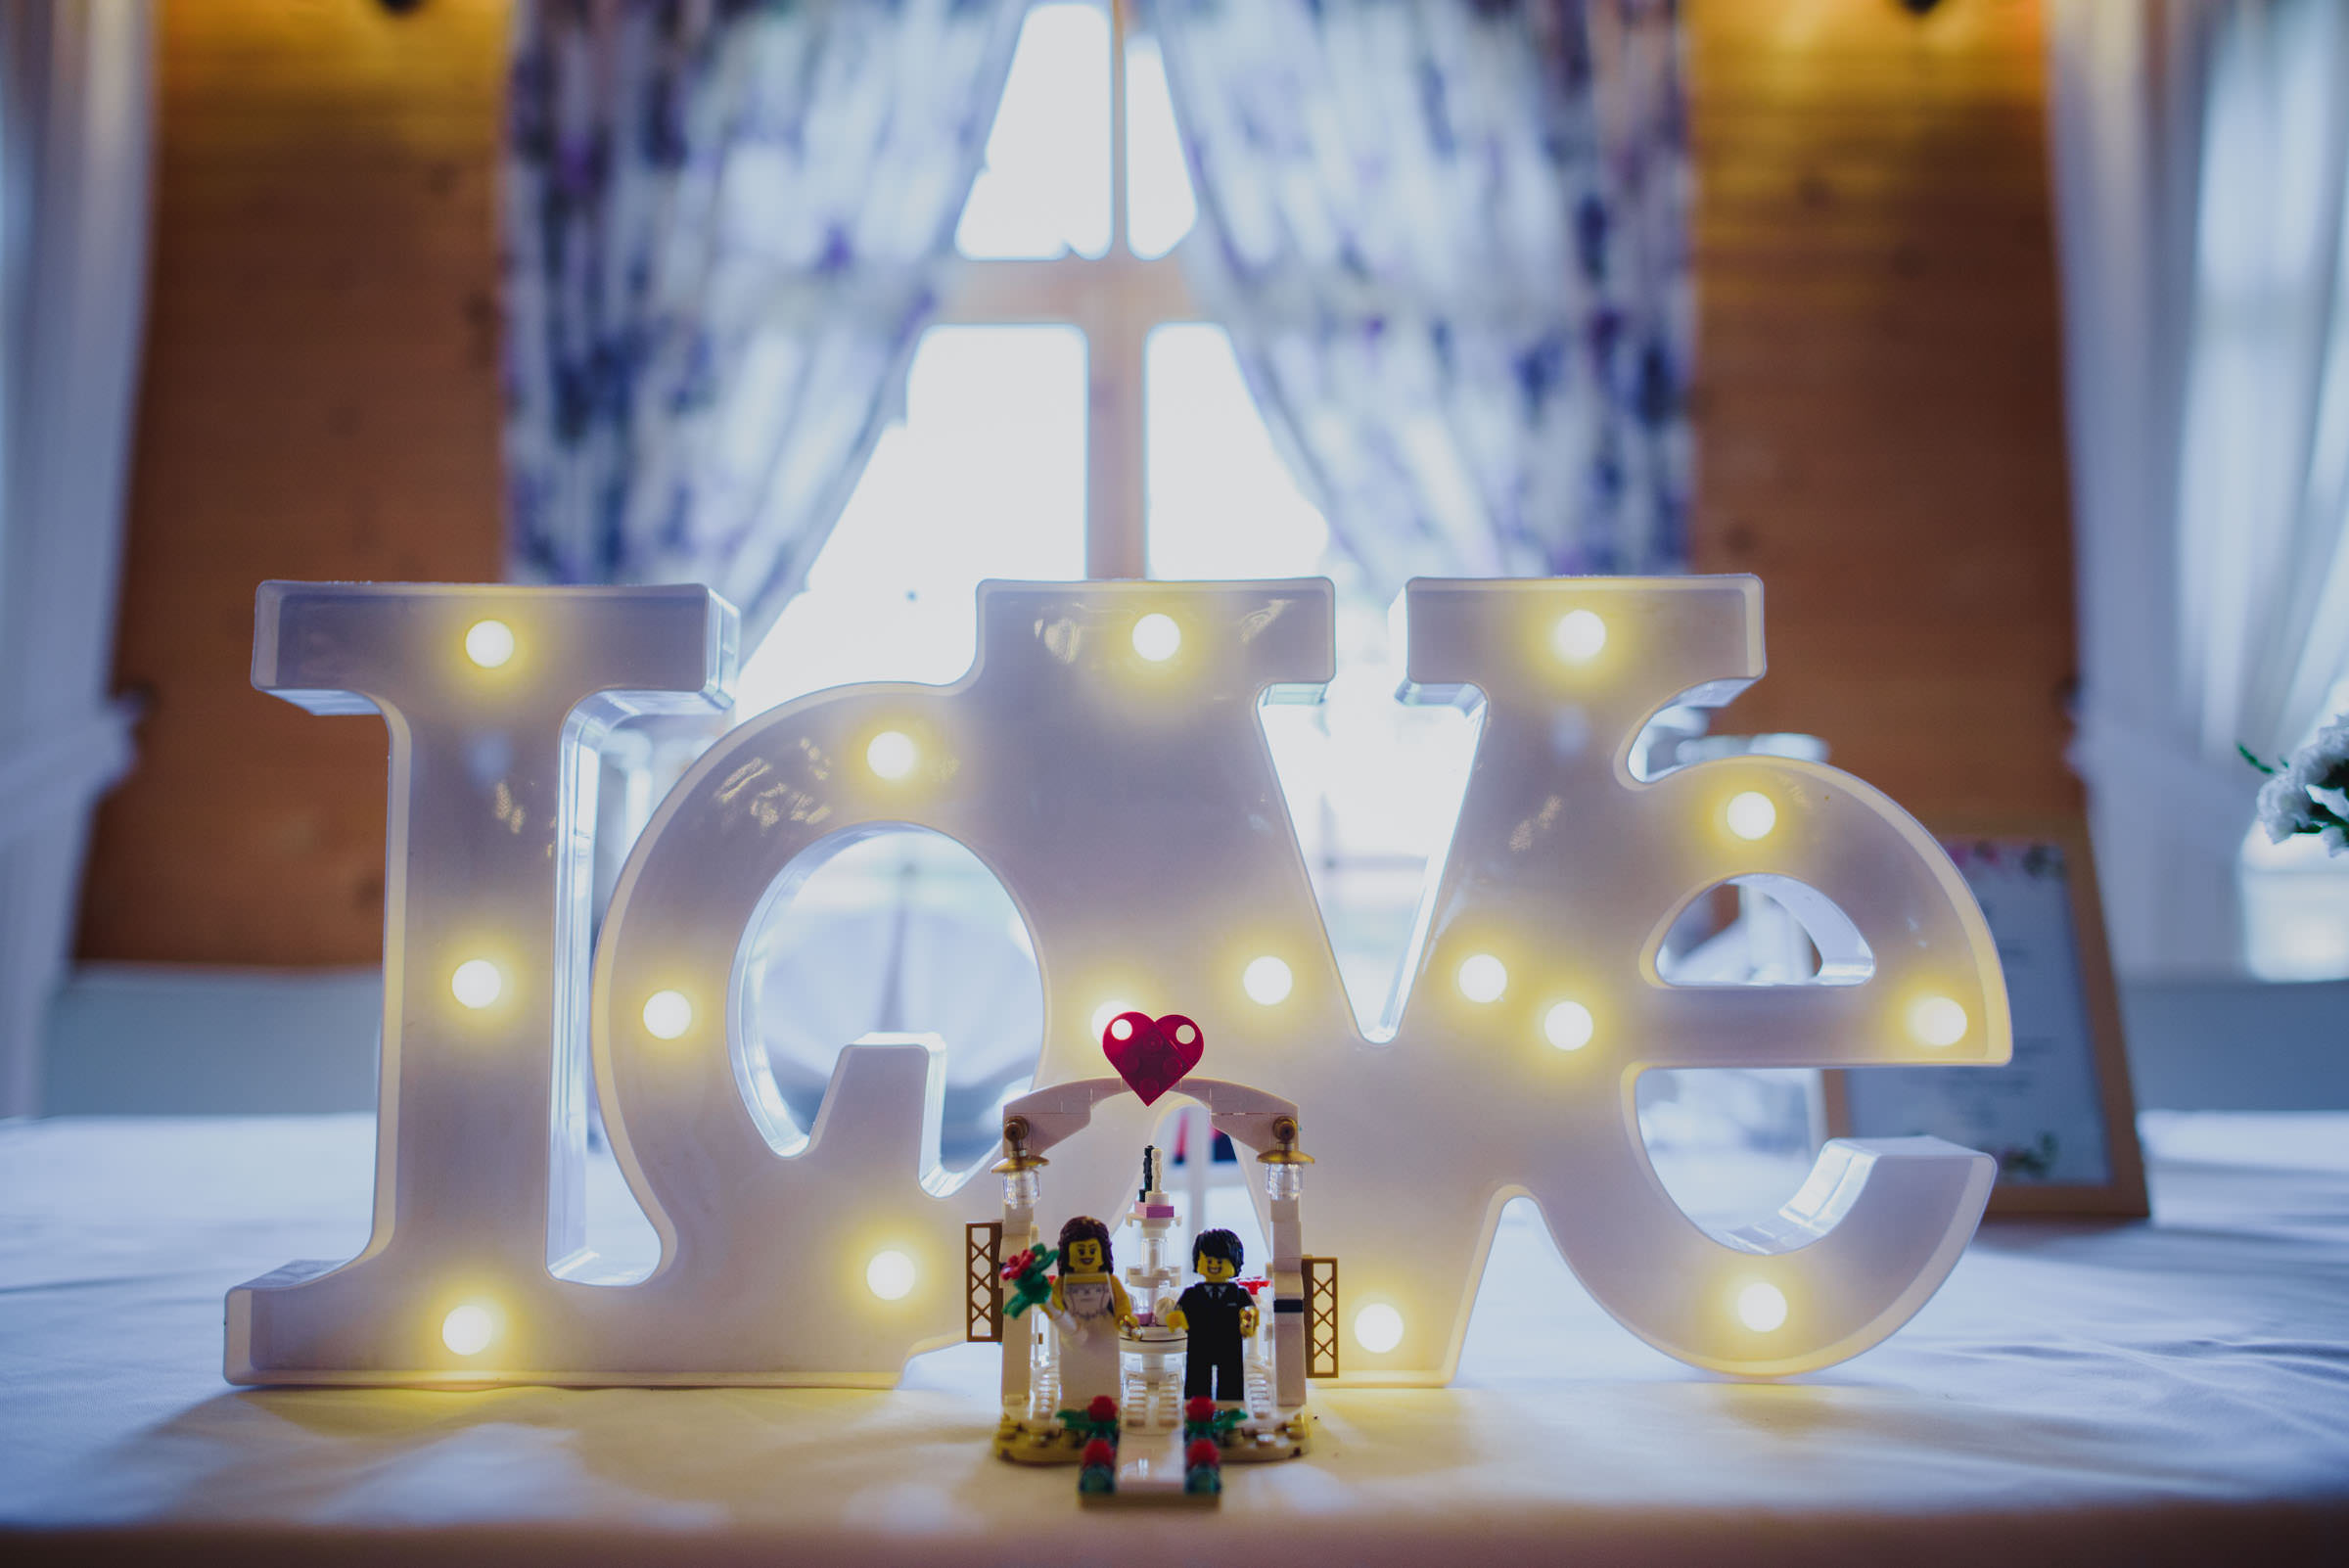 LEGO couple in front of glowing LOVE sign